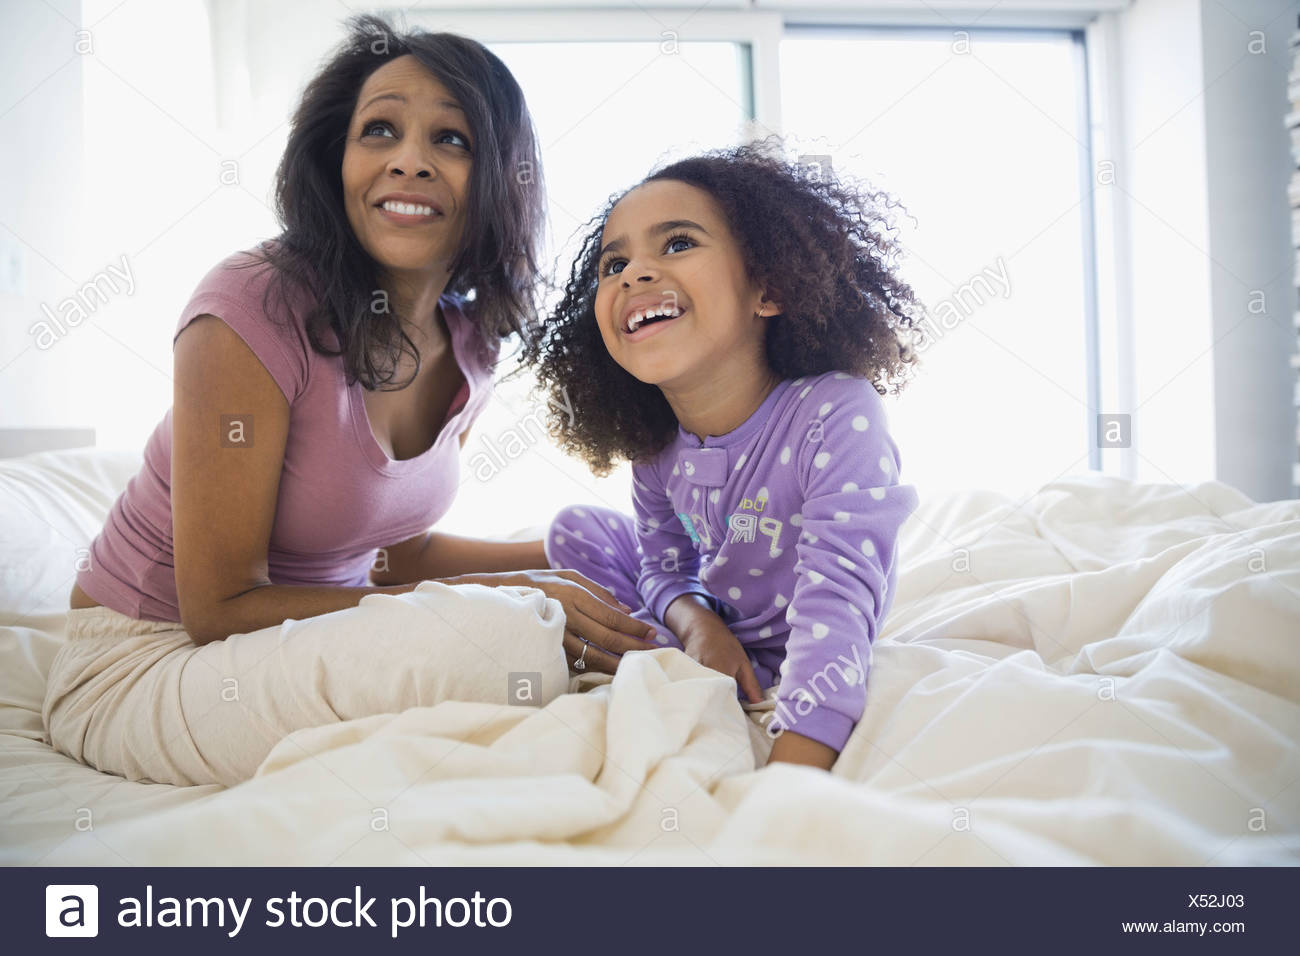 Smiling mother and daughter sitting on bed - Stock Image